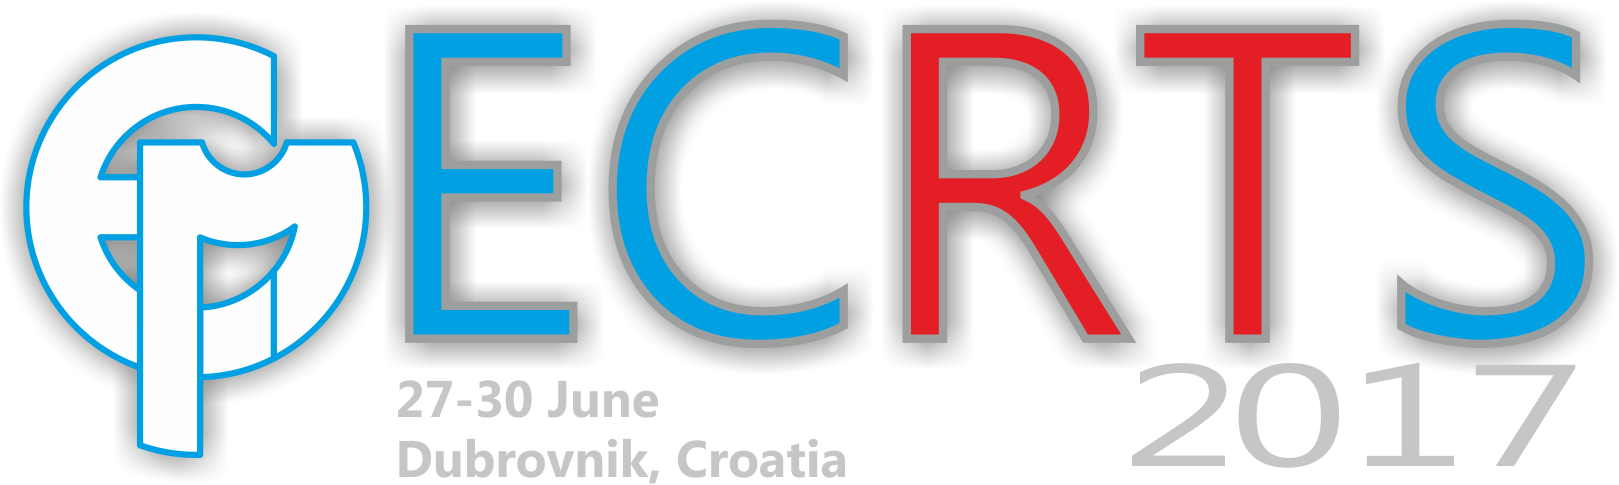 Euromicro Conference on Real-Time Systems - ECRTS-2017